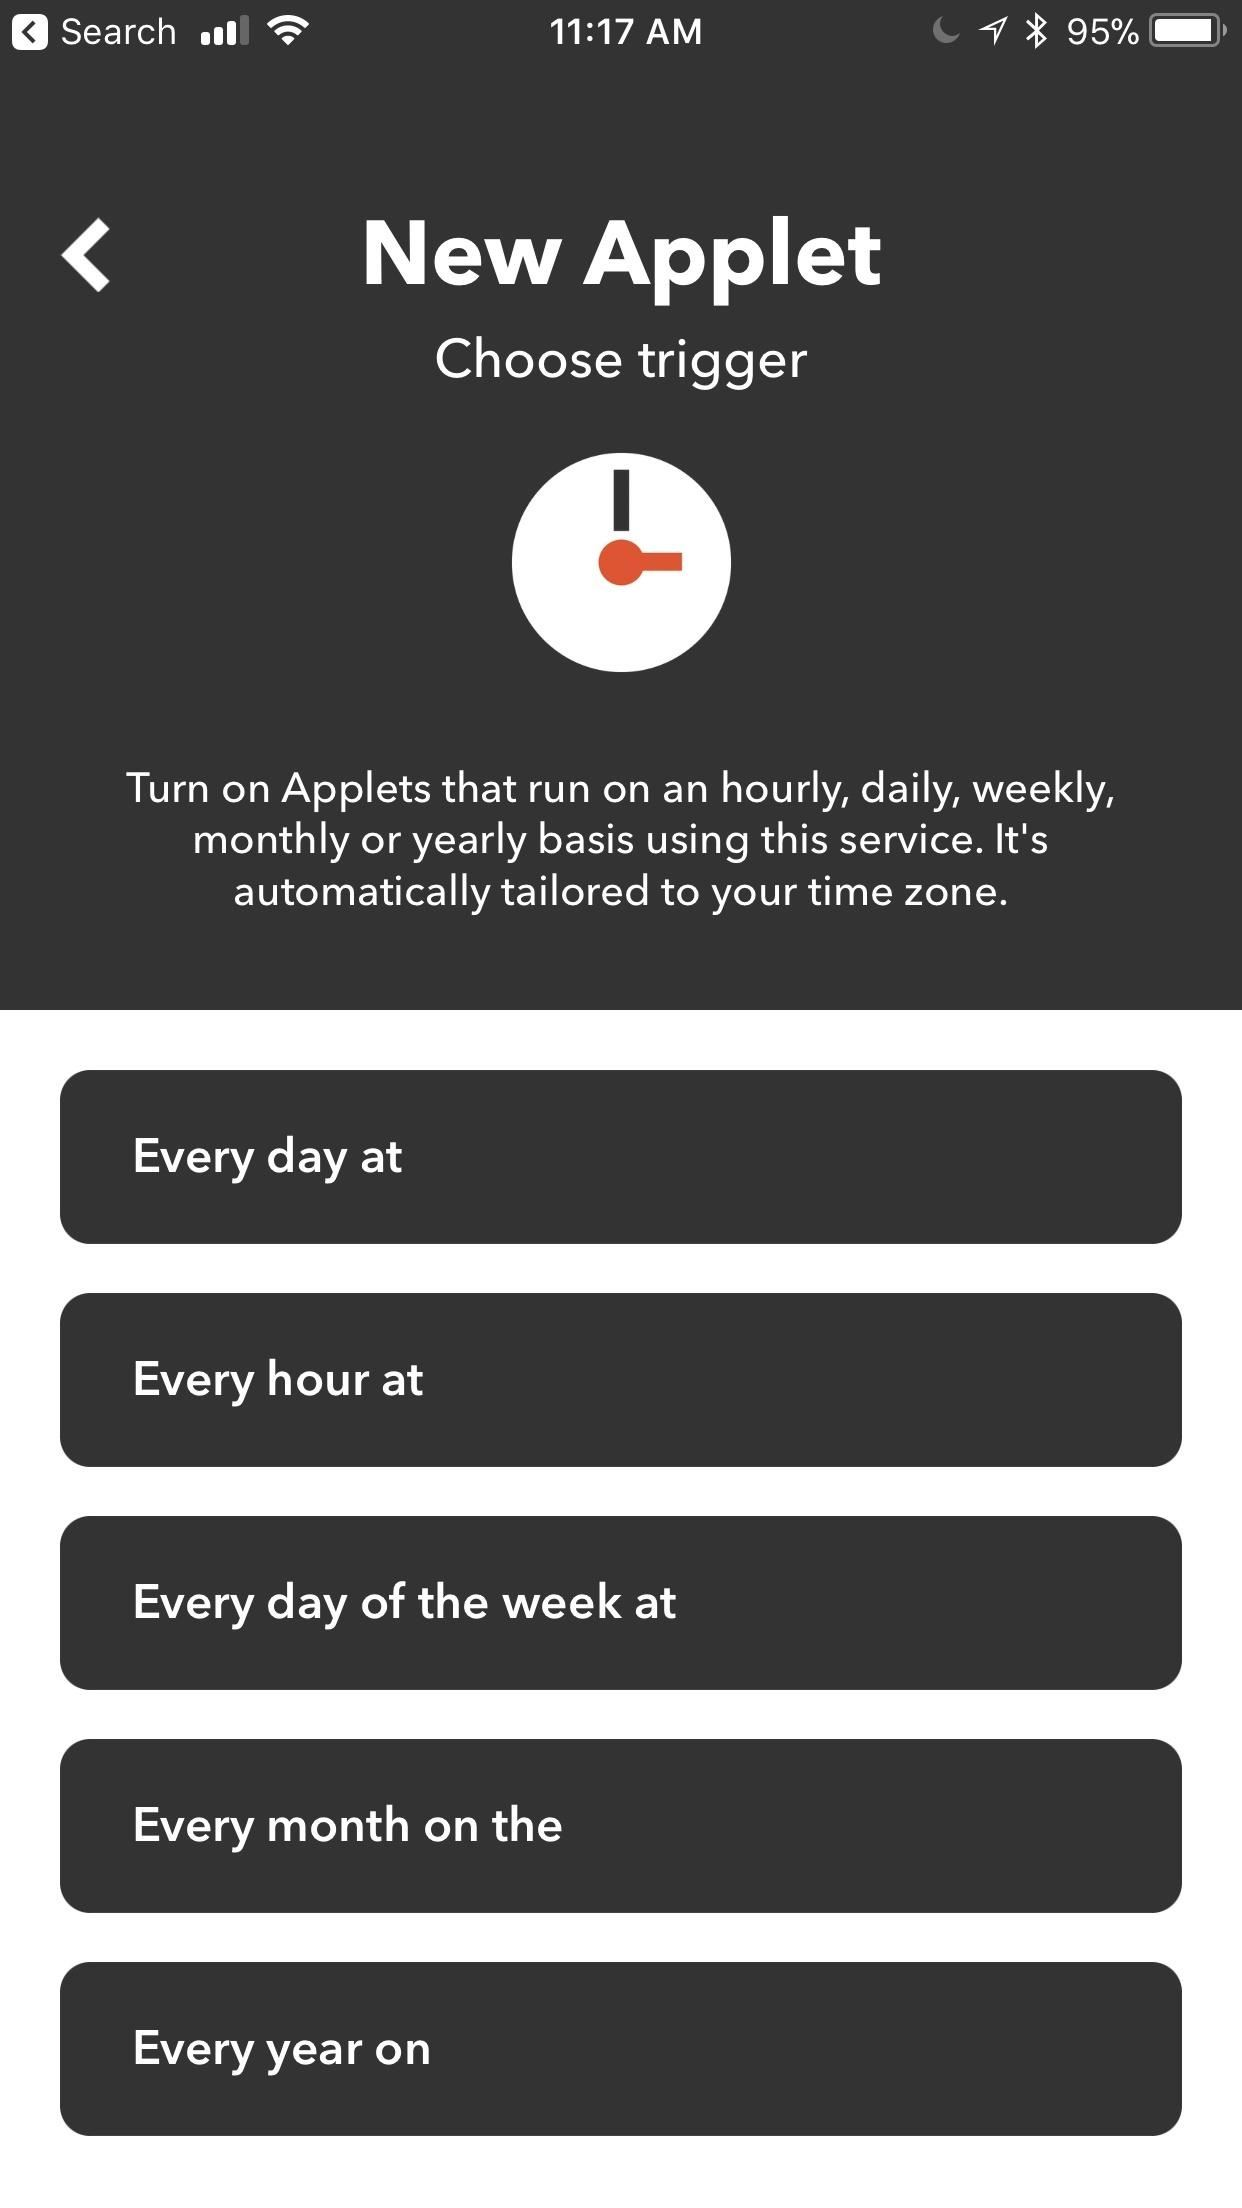 IFTTT 101: How to Create Custom Applets